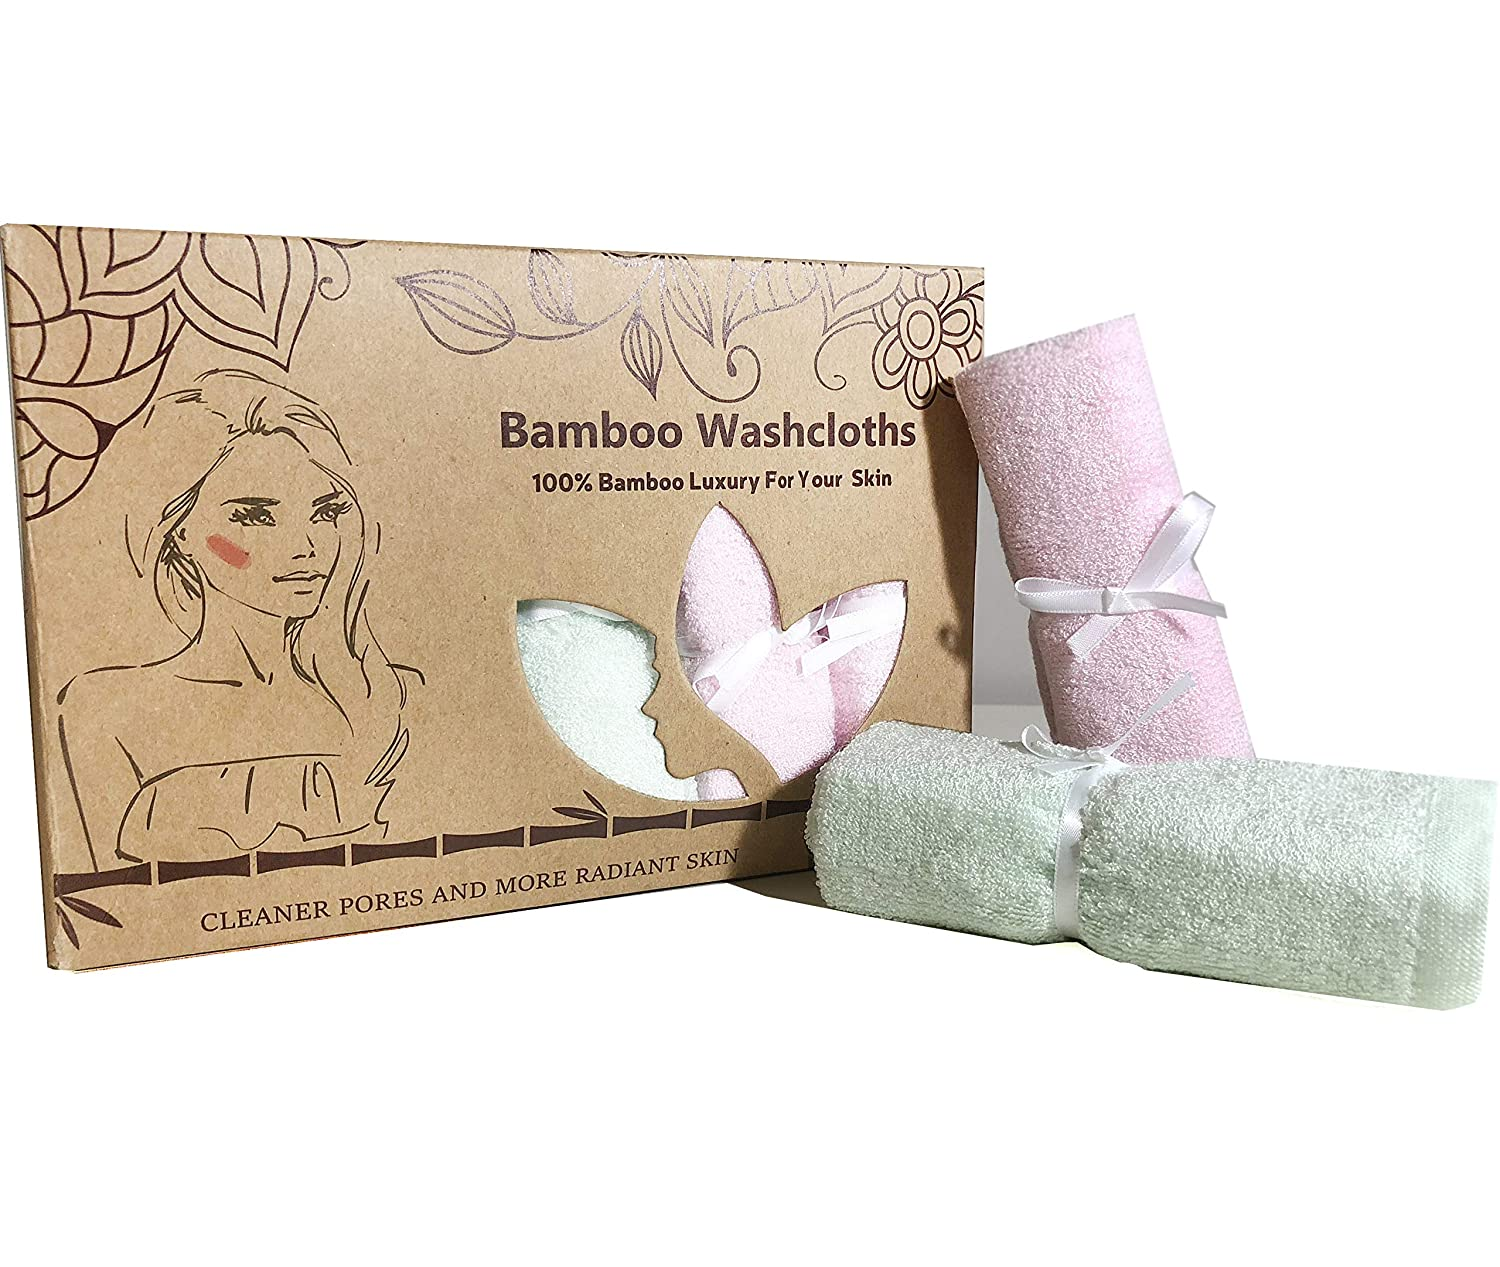 Organic Bamboo Washcloths - Ultra Soft and Super Absorbent Wash Clothes for Face - Perfect for All Ages and Sensitive Skin (Eczema, Rash, Burns) Lucylla